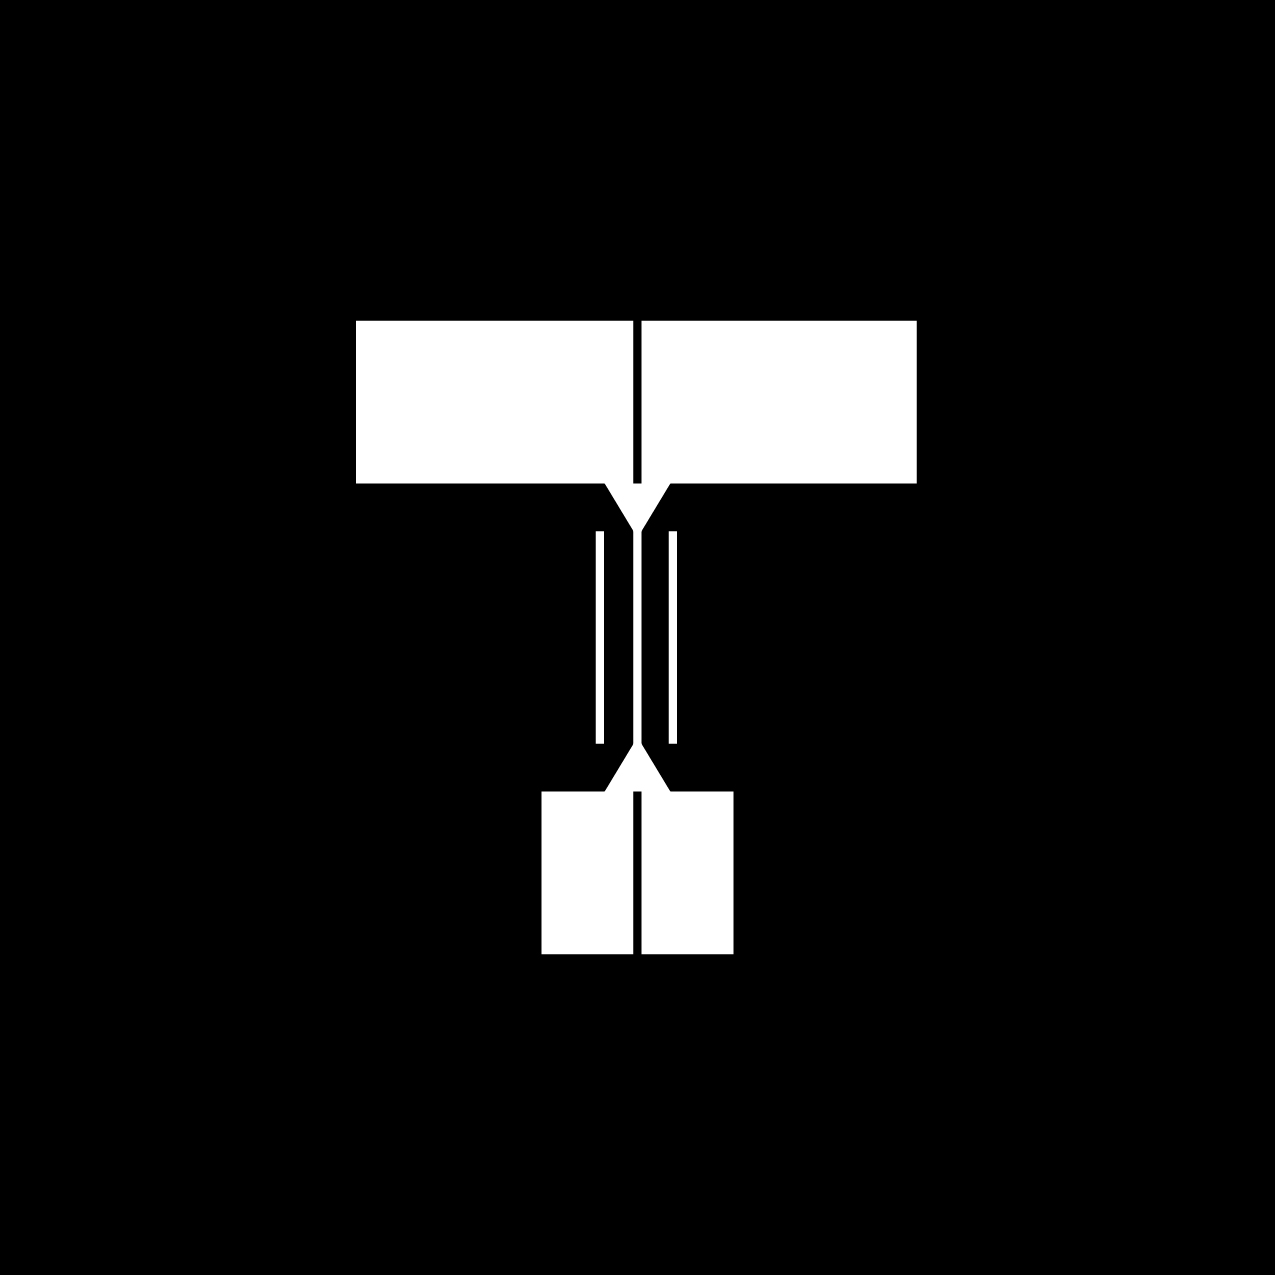 Letter T8 Design by Furia